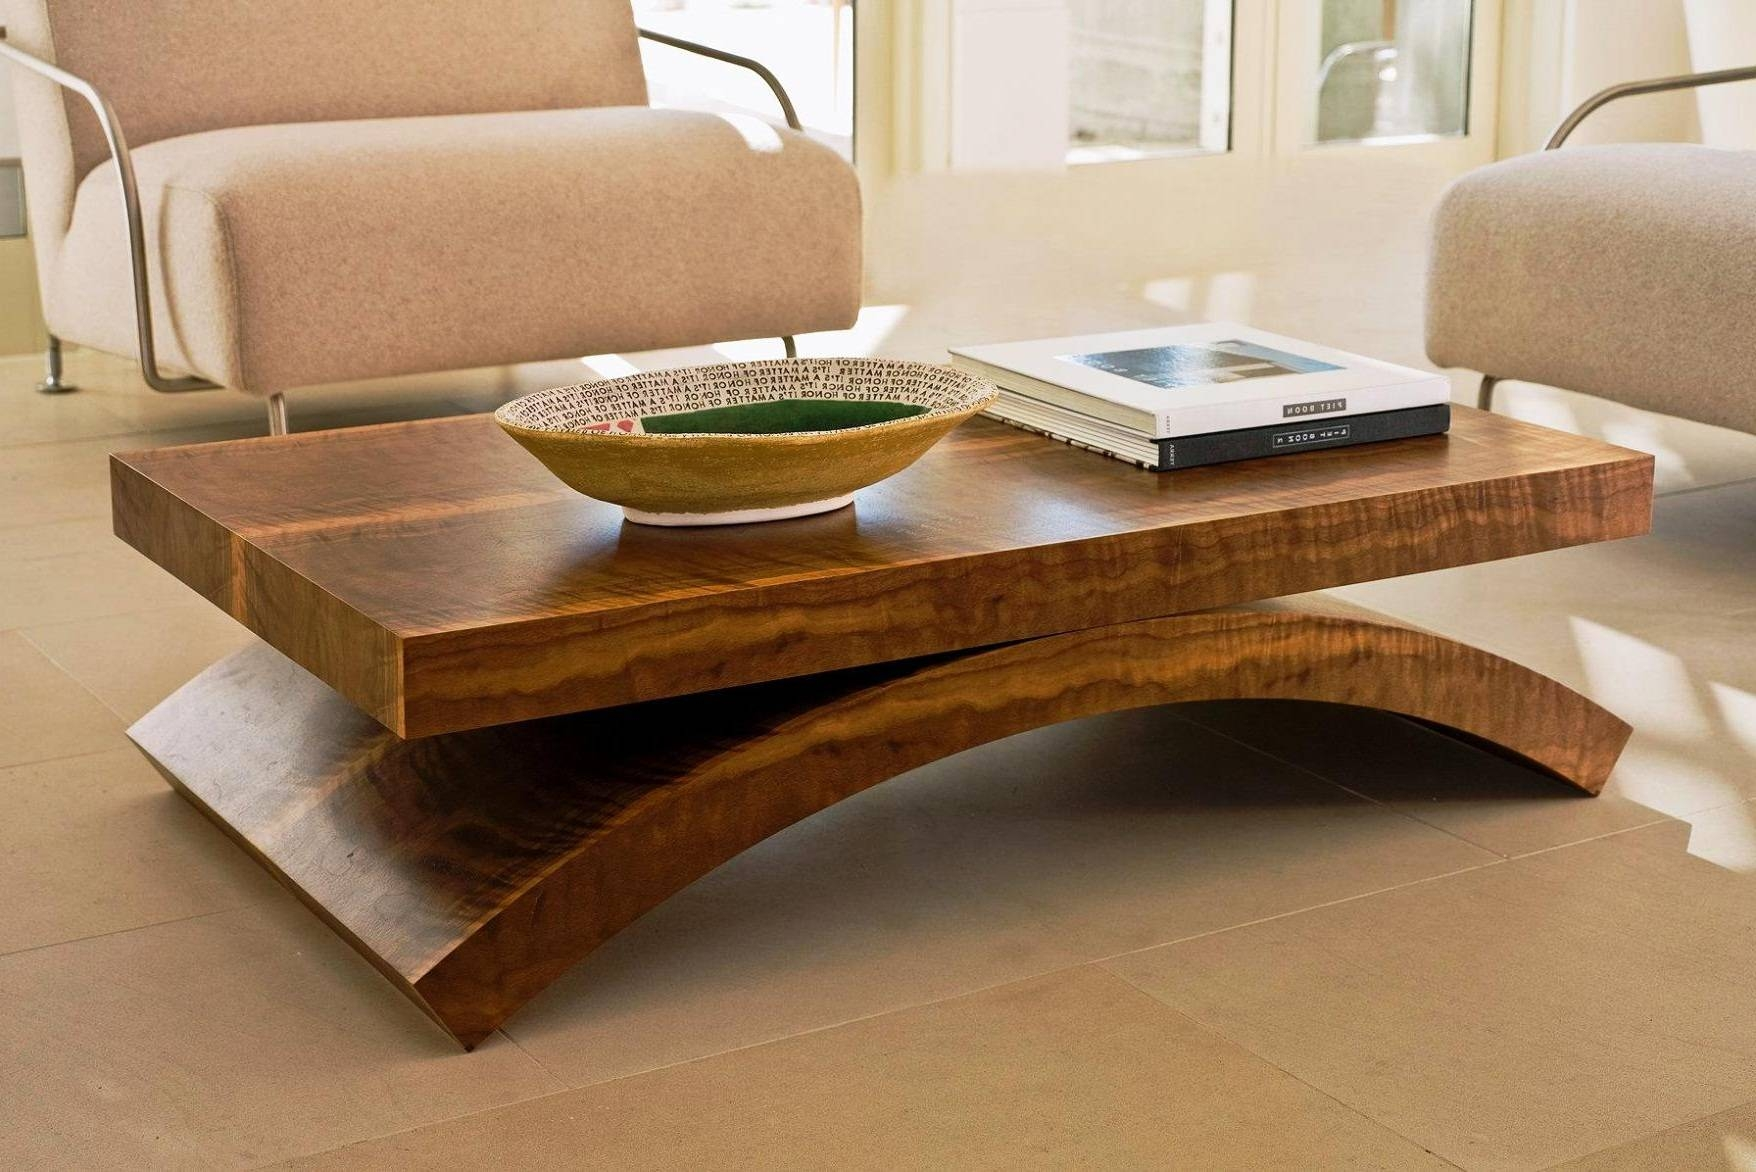 Coffee Tables: Popular Oversized Coffee Tables Designs Large intended for Oversized Square Coffee Tables (Image 13 of 30)